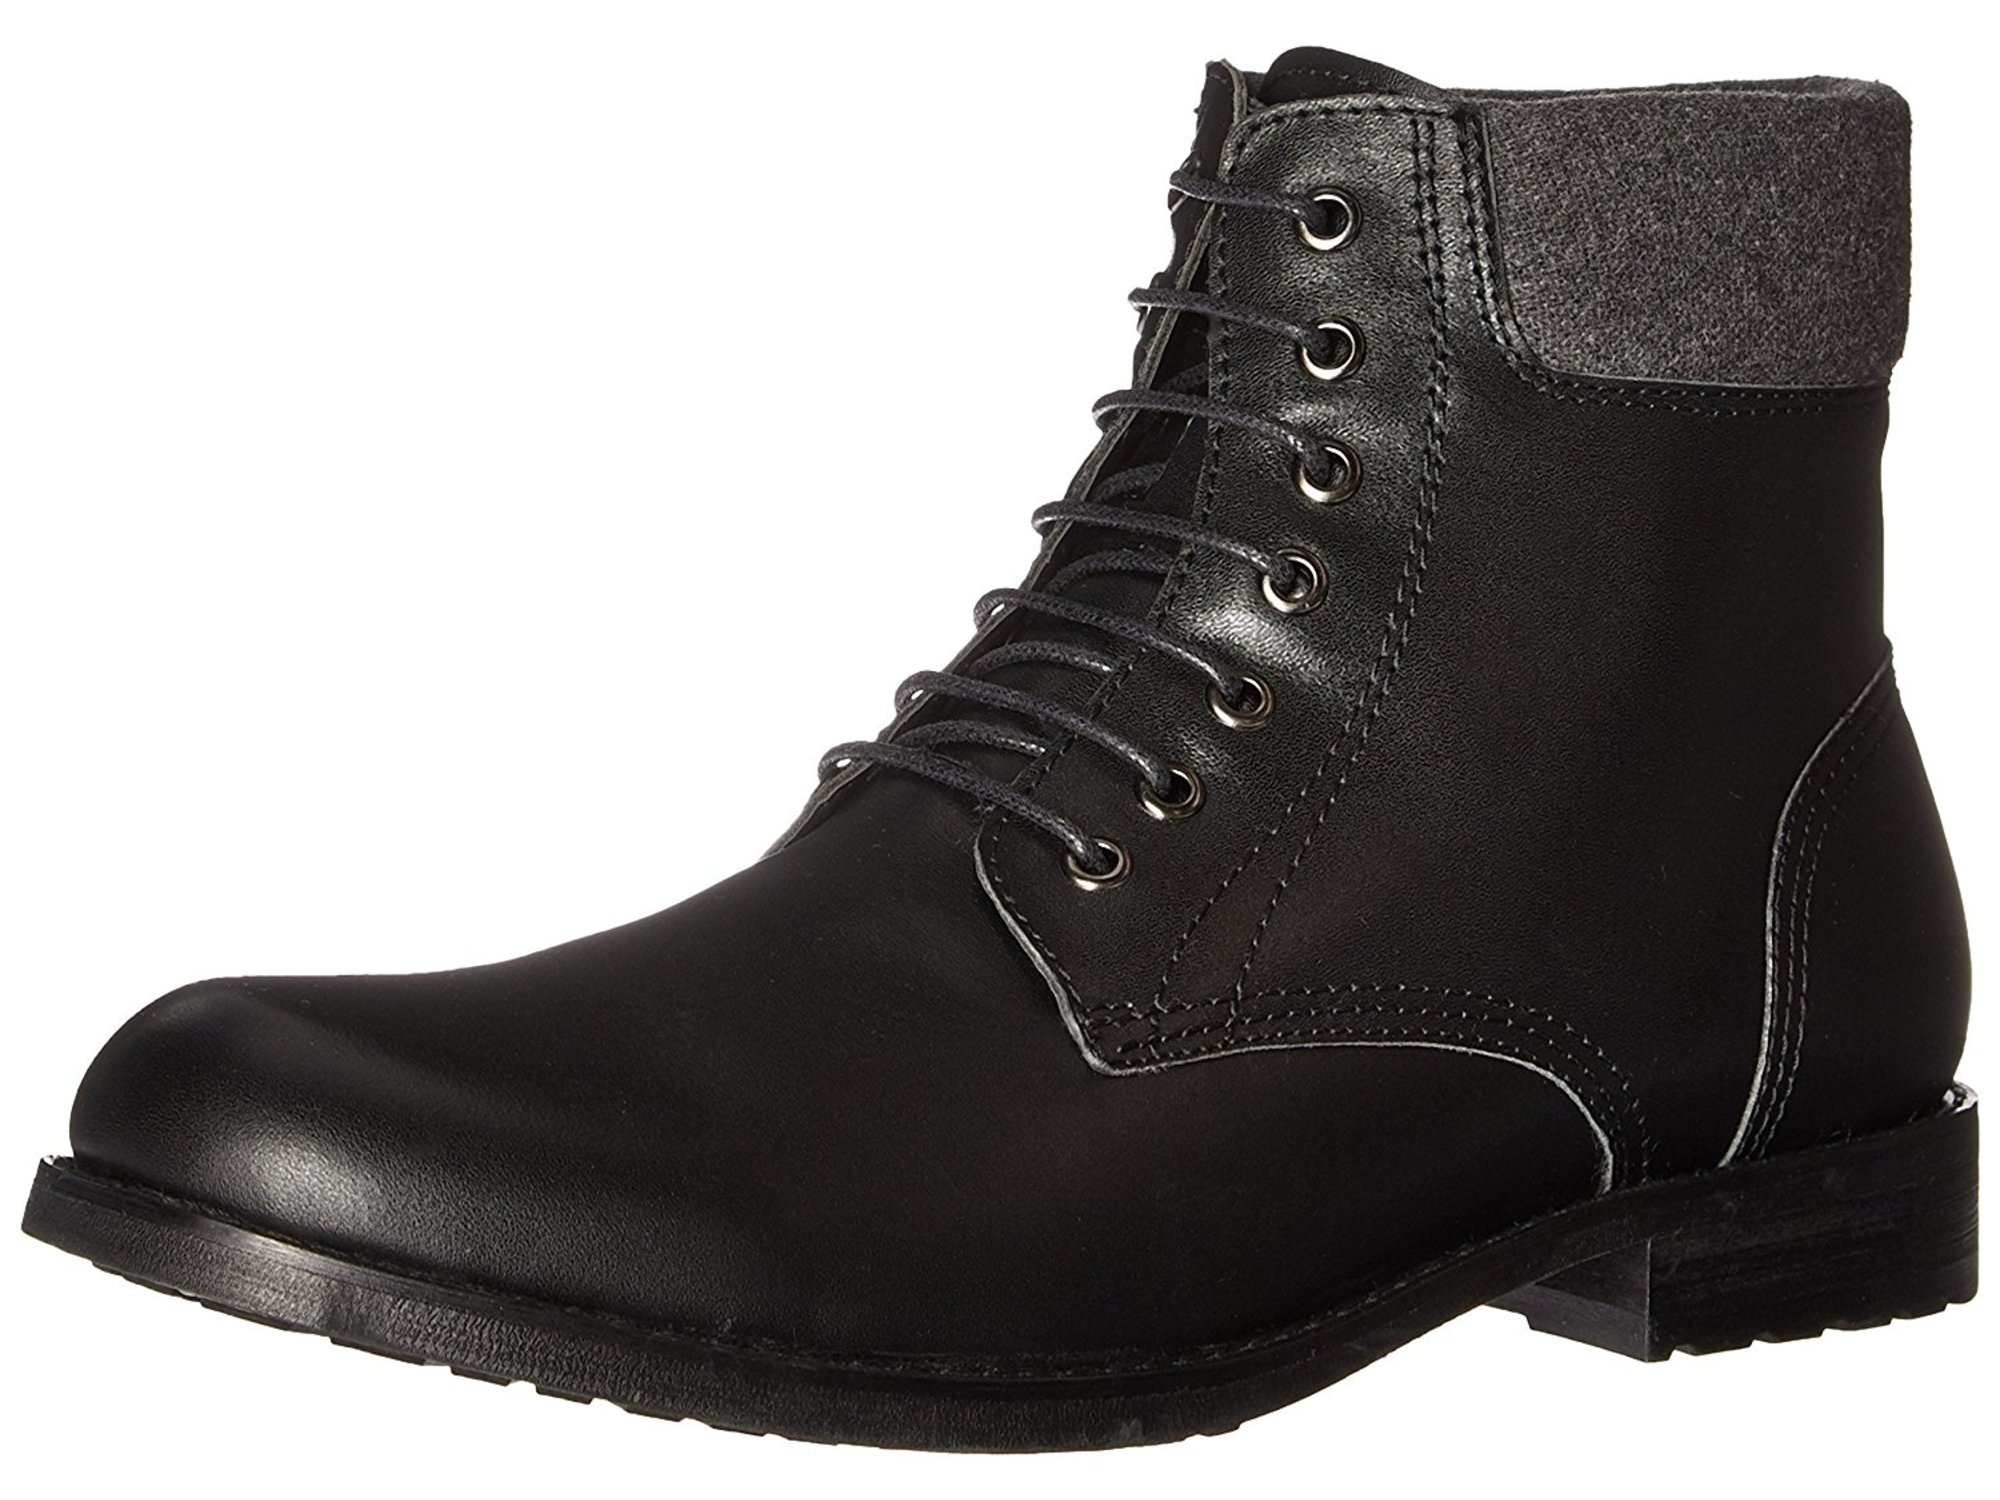 English Laundry Men's Wynn Boot, Black, Size 10.0